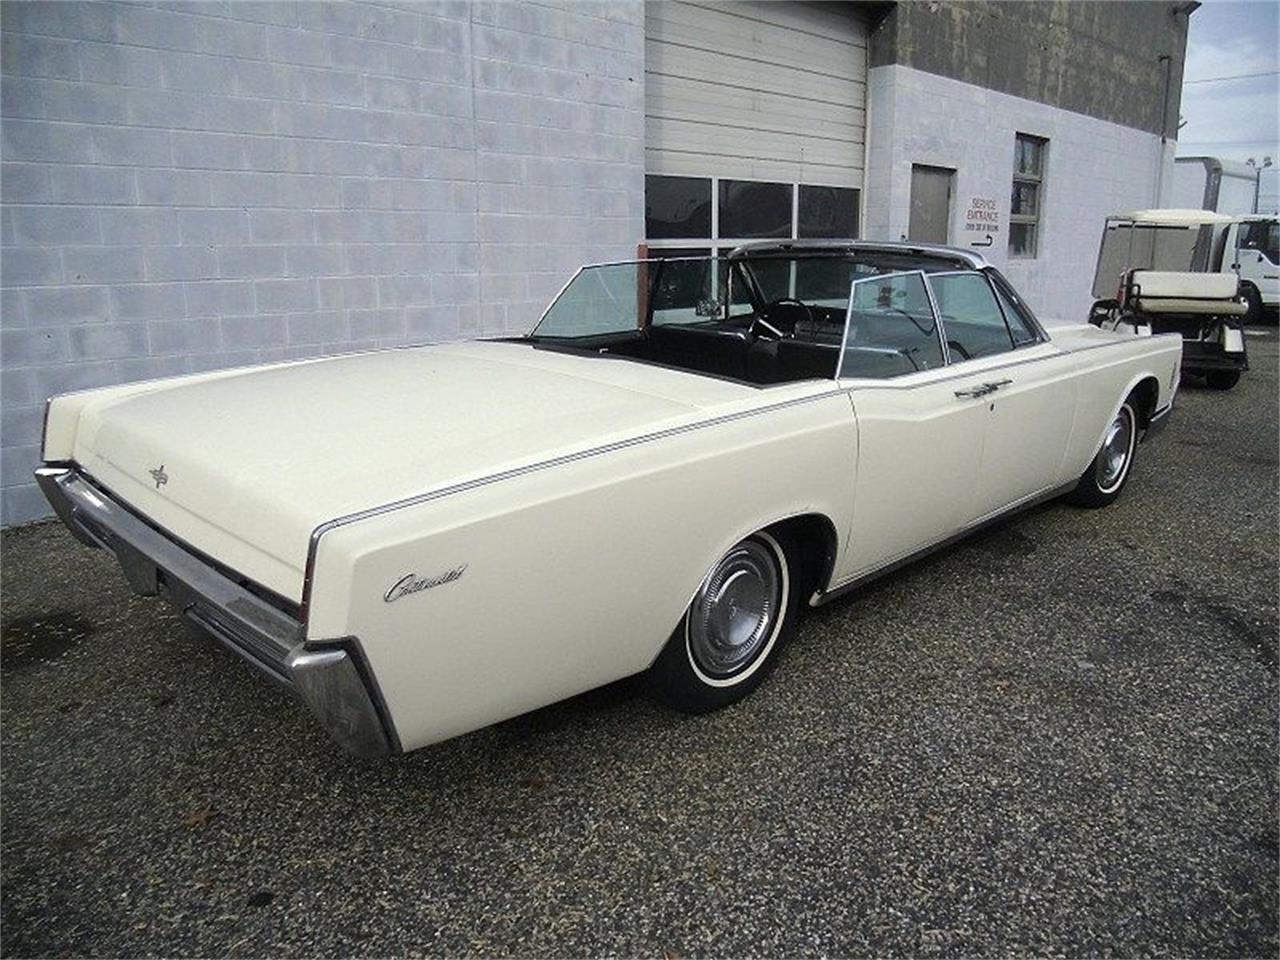 Large Picture of '66 Lincoln Continental located in Stratford New Jersey - $27,990.00 - OCC2